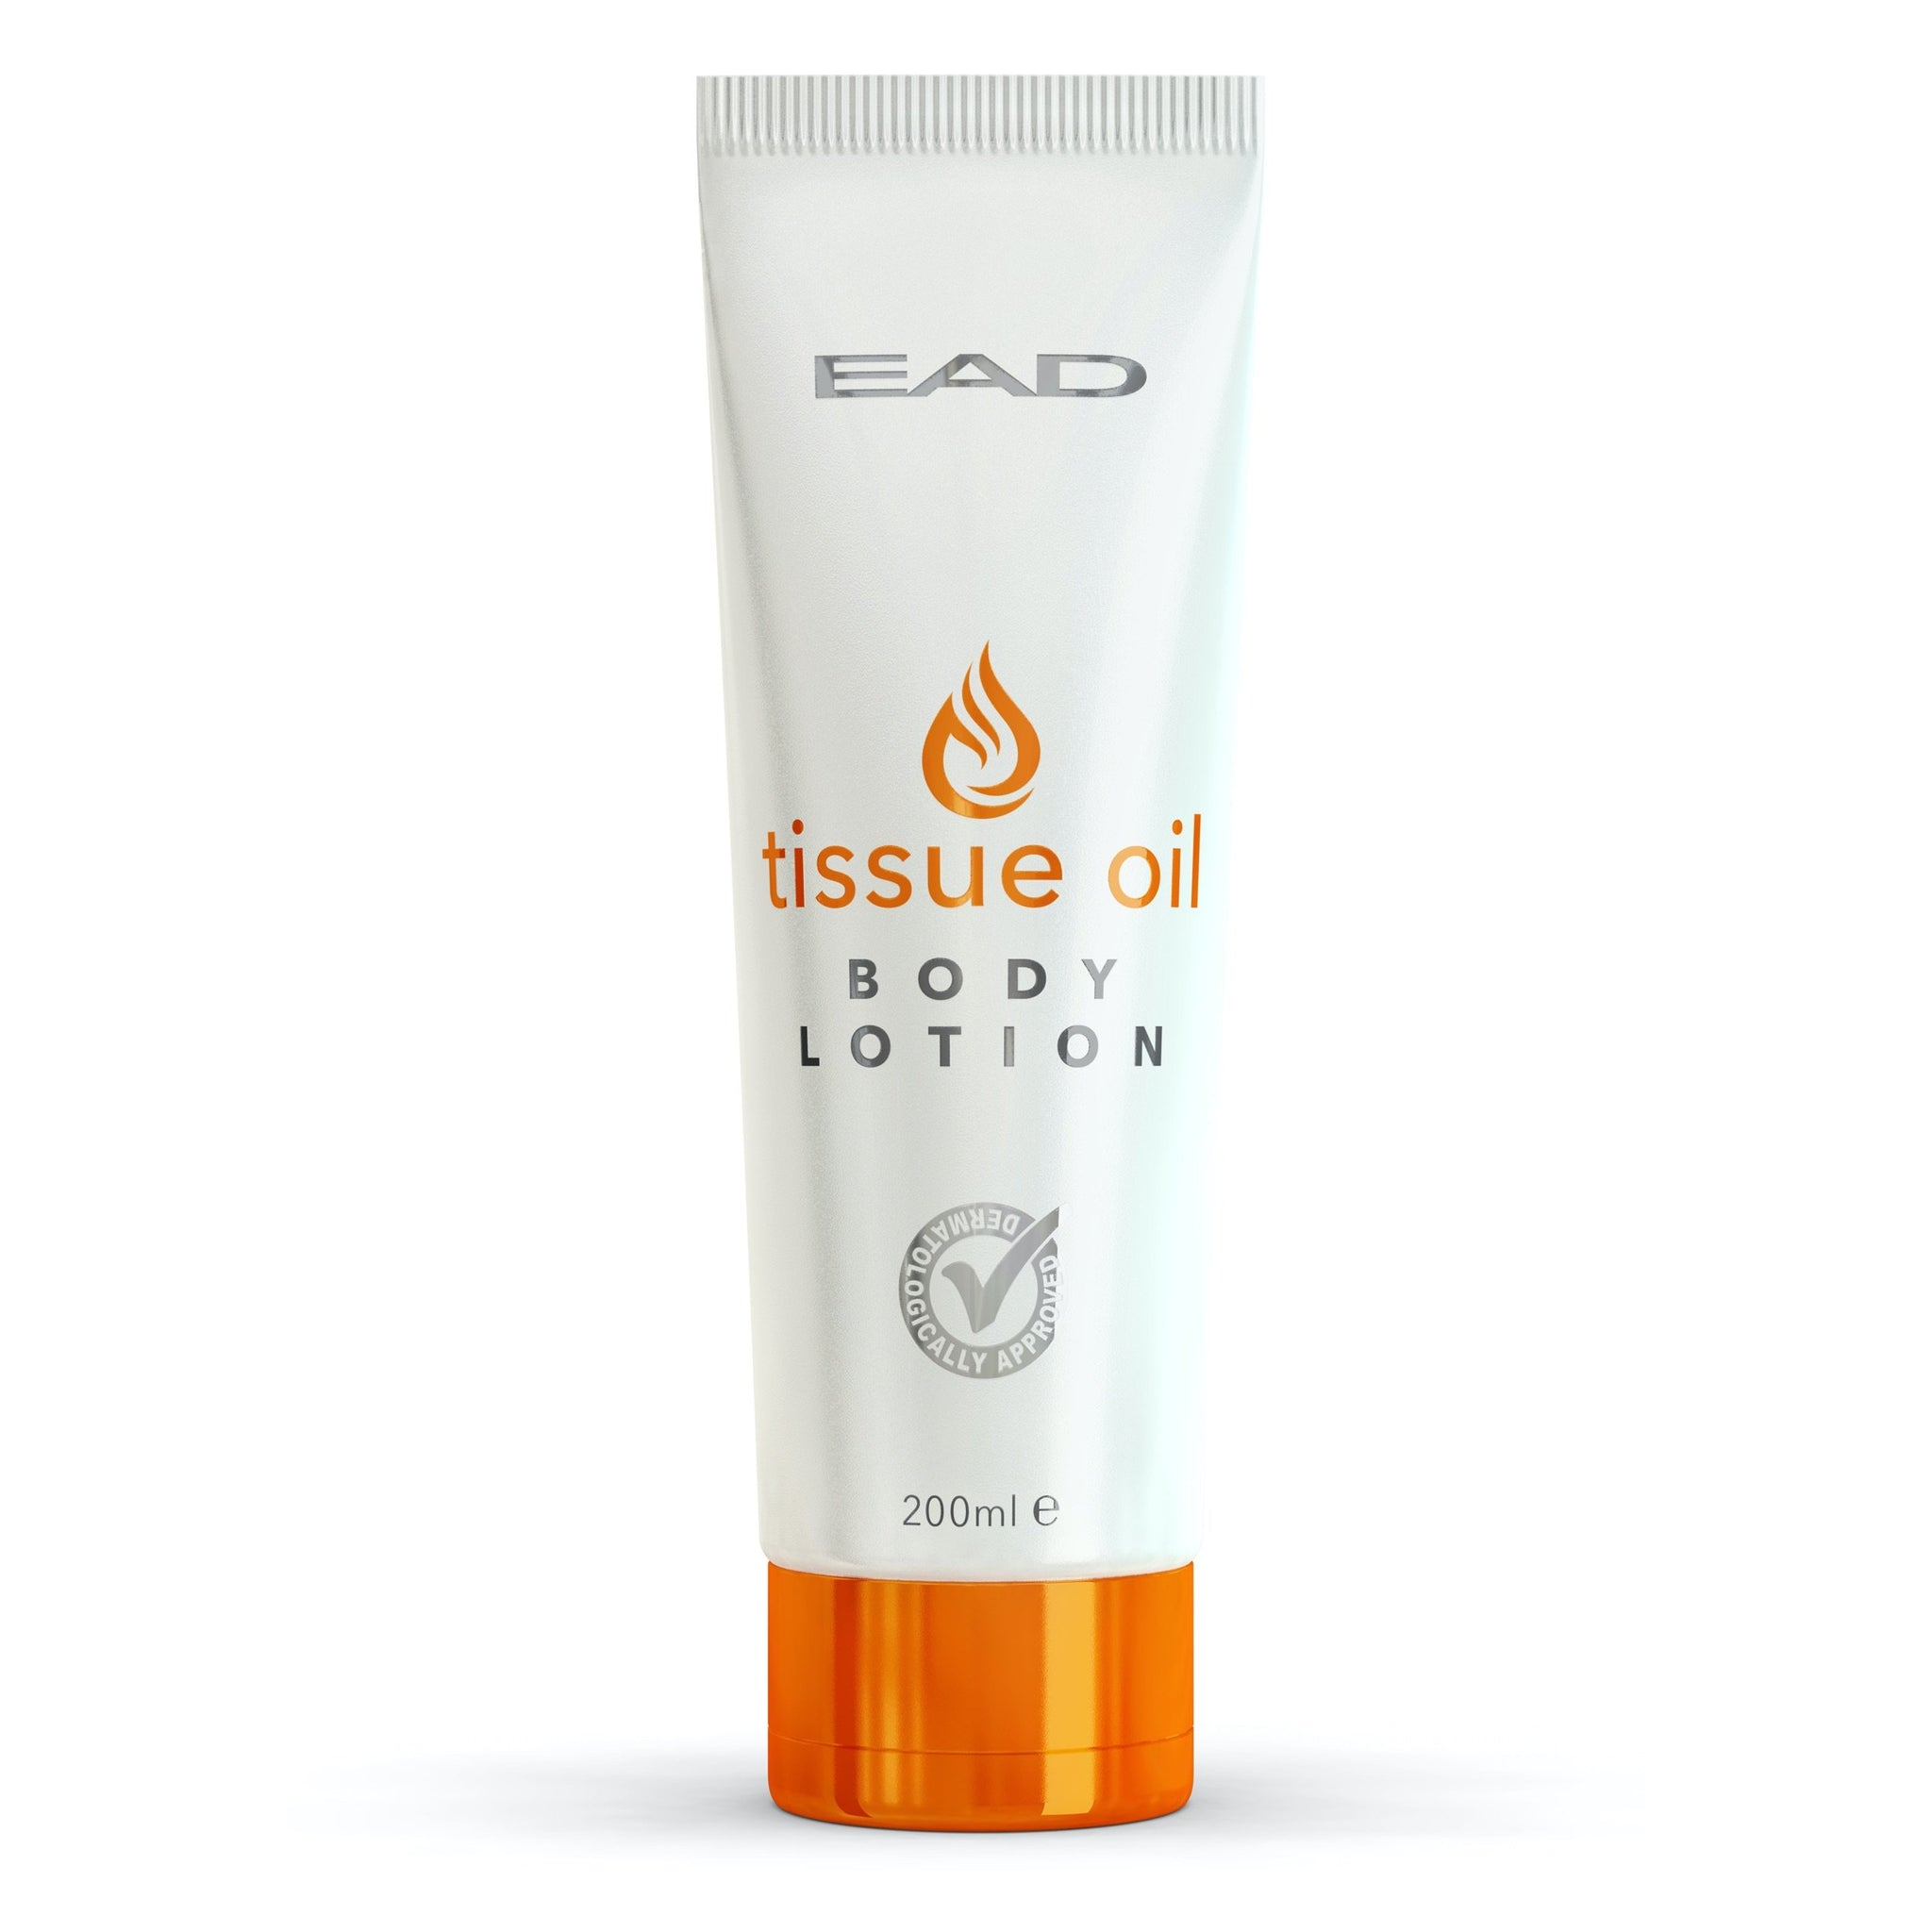 EAD TISSUE OIL BODY LOTION 200ML - 200 ml